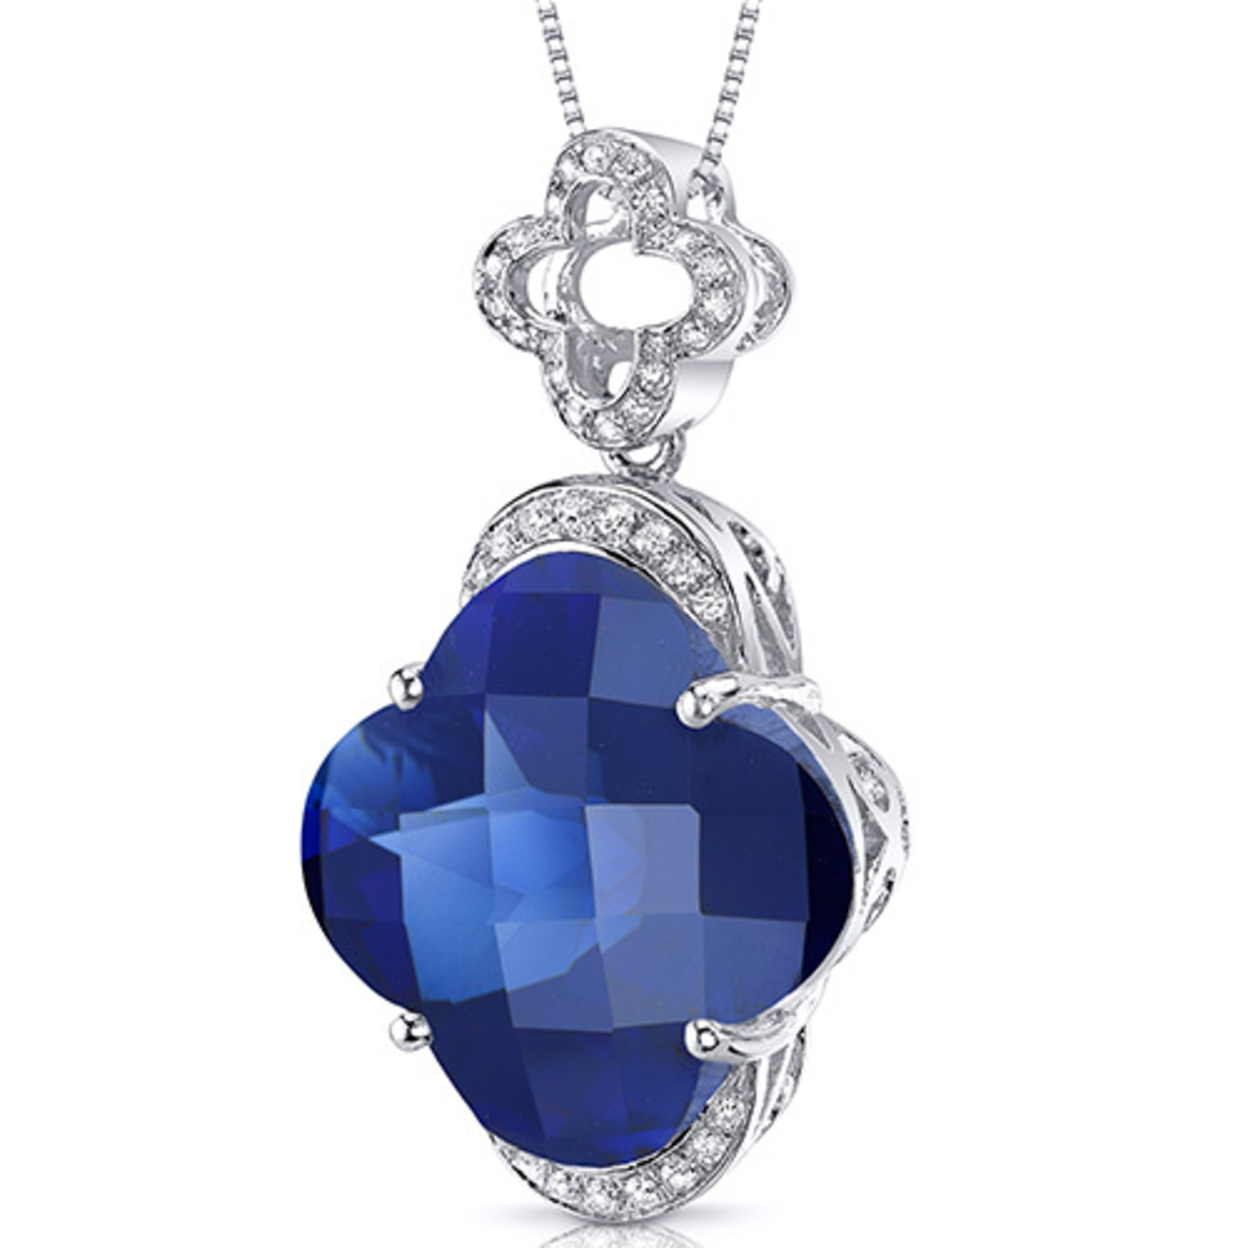 Oravo 21.00 Carat T.g.w. Lilly Cut Created Blue Sapphire Rhodium Over Sterling Silver Pendant, 18""